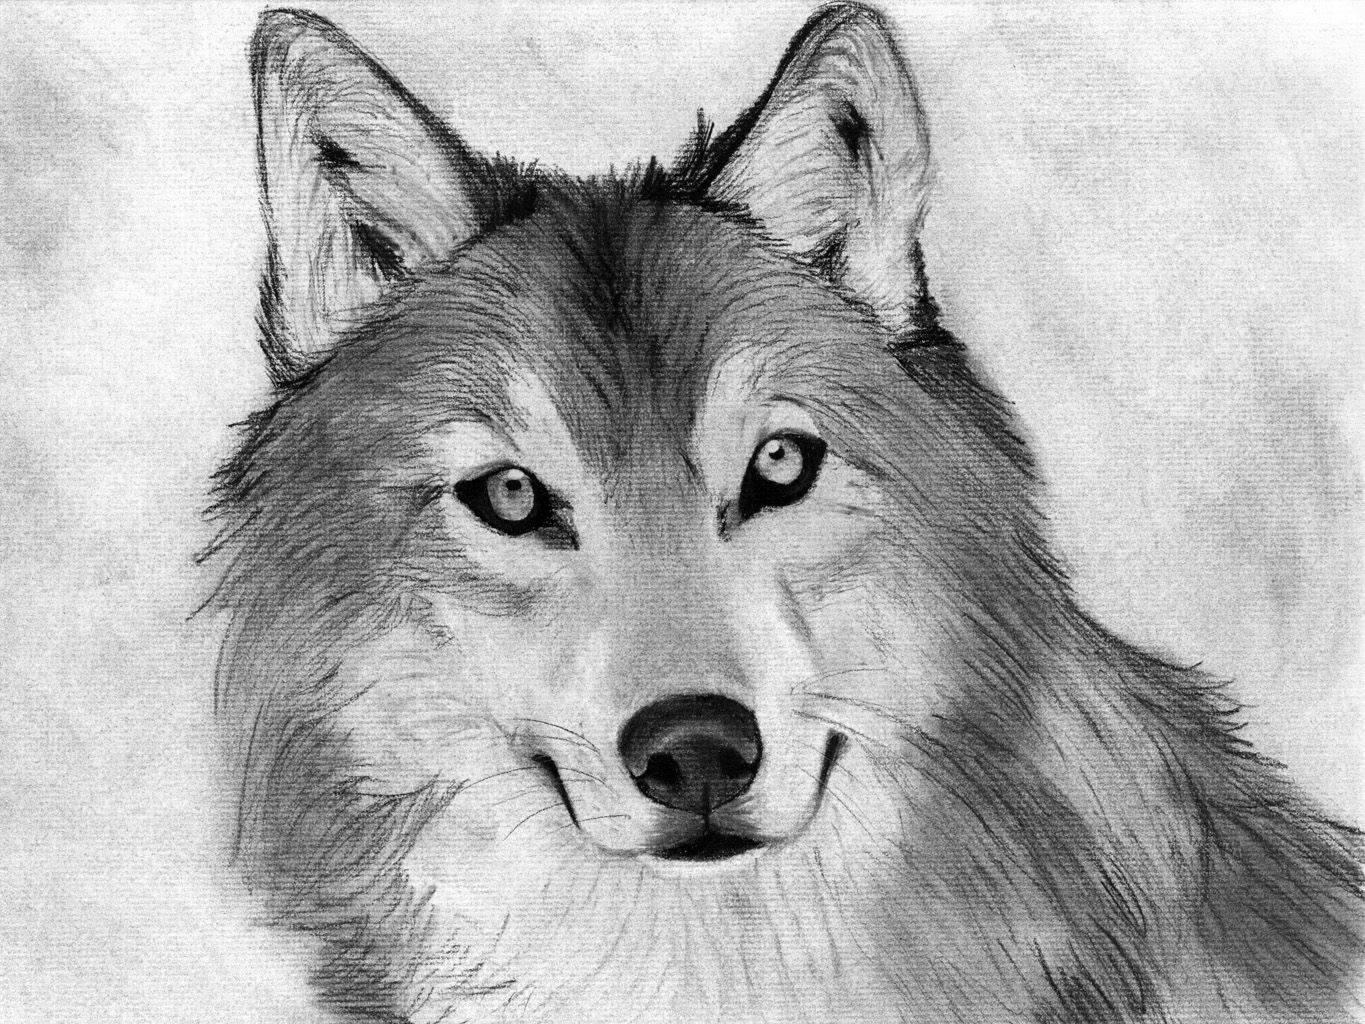 Charcoal drawing of animals